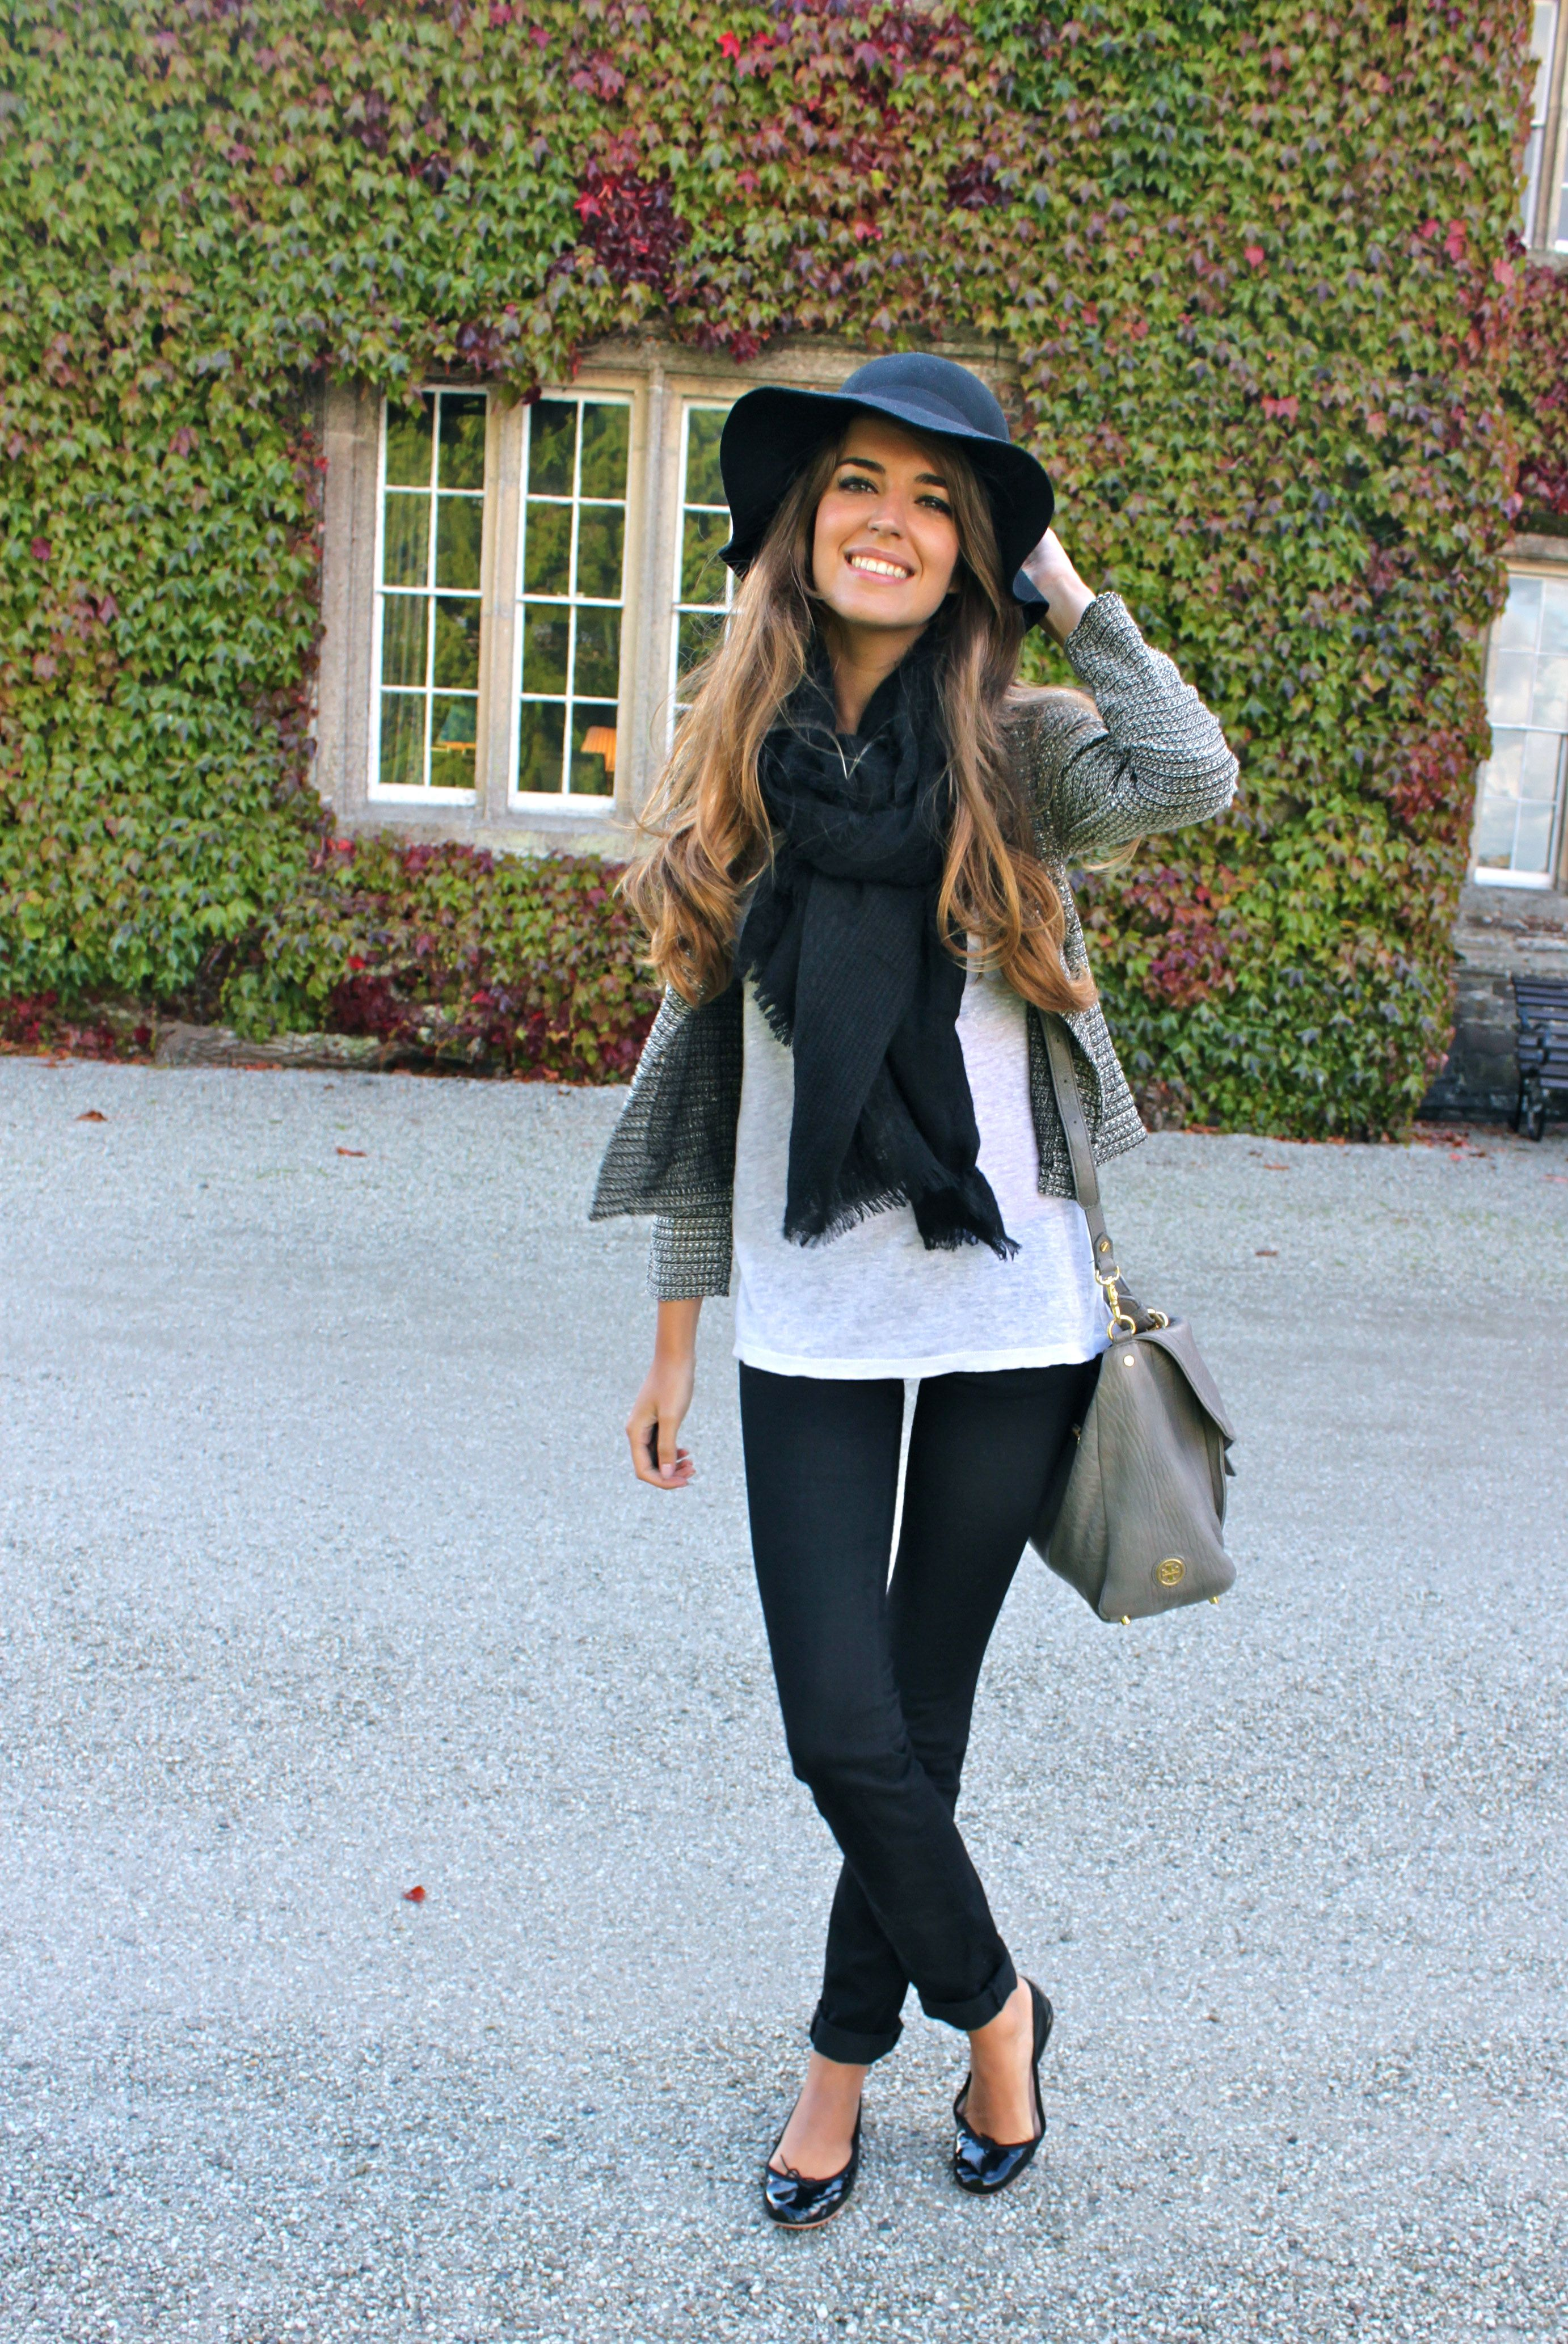 Img 3309 Clara Alonso Blog Fashion Style Outfits With Hats